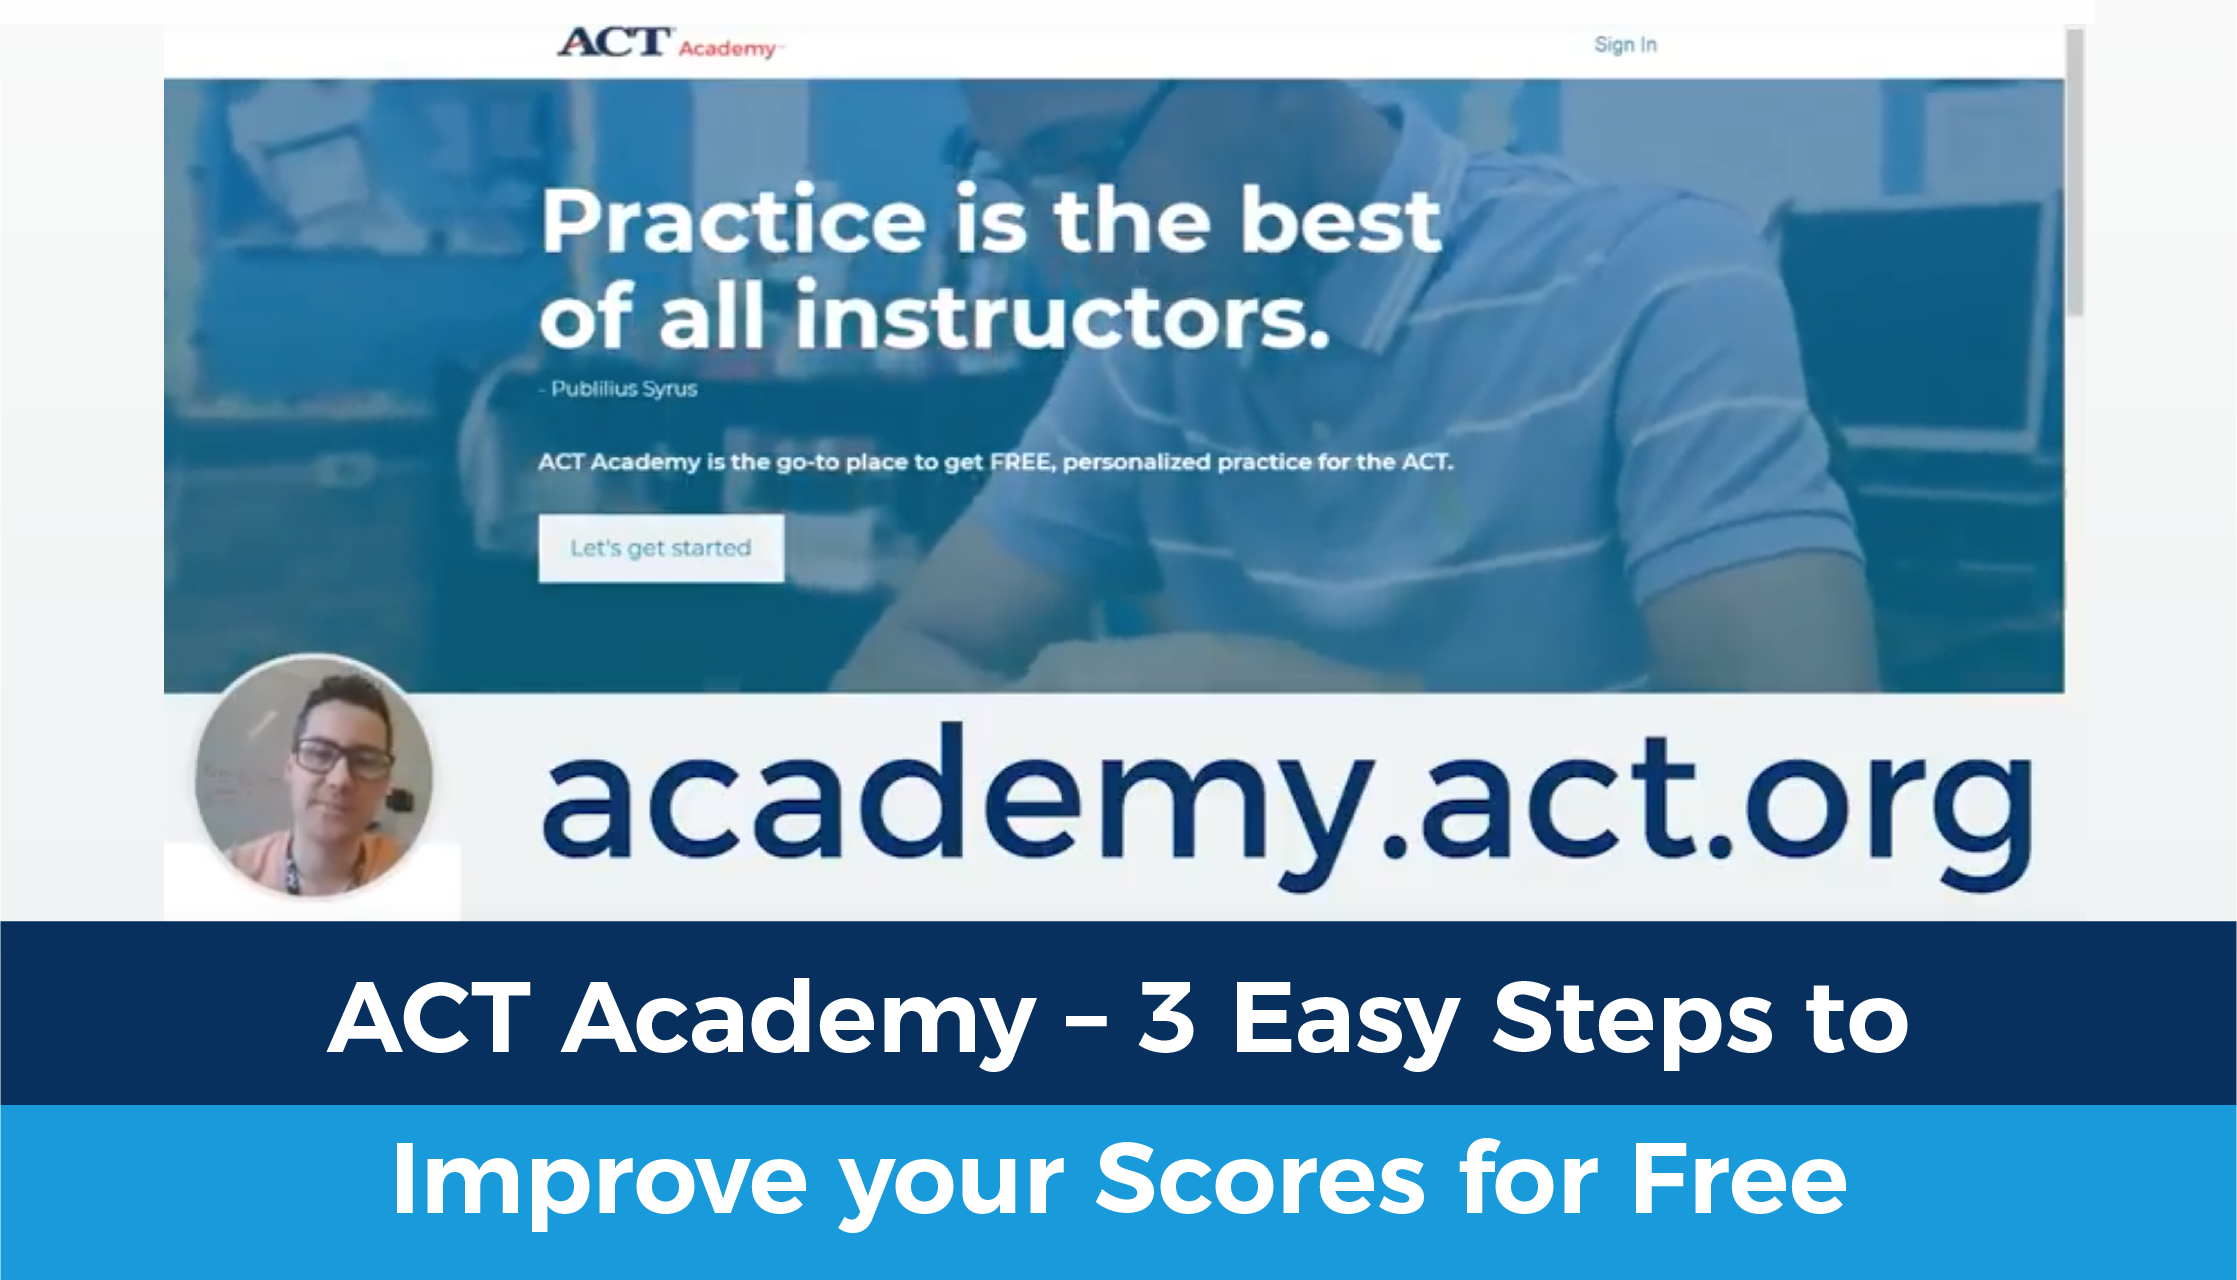 3 Easy Steps to improve your scores for free